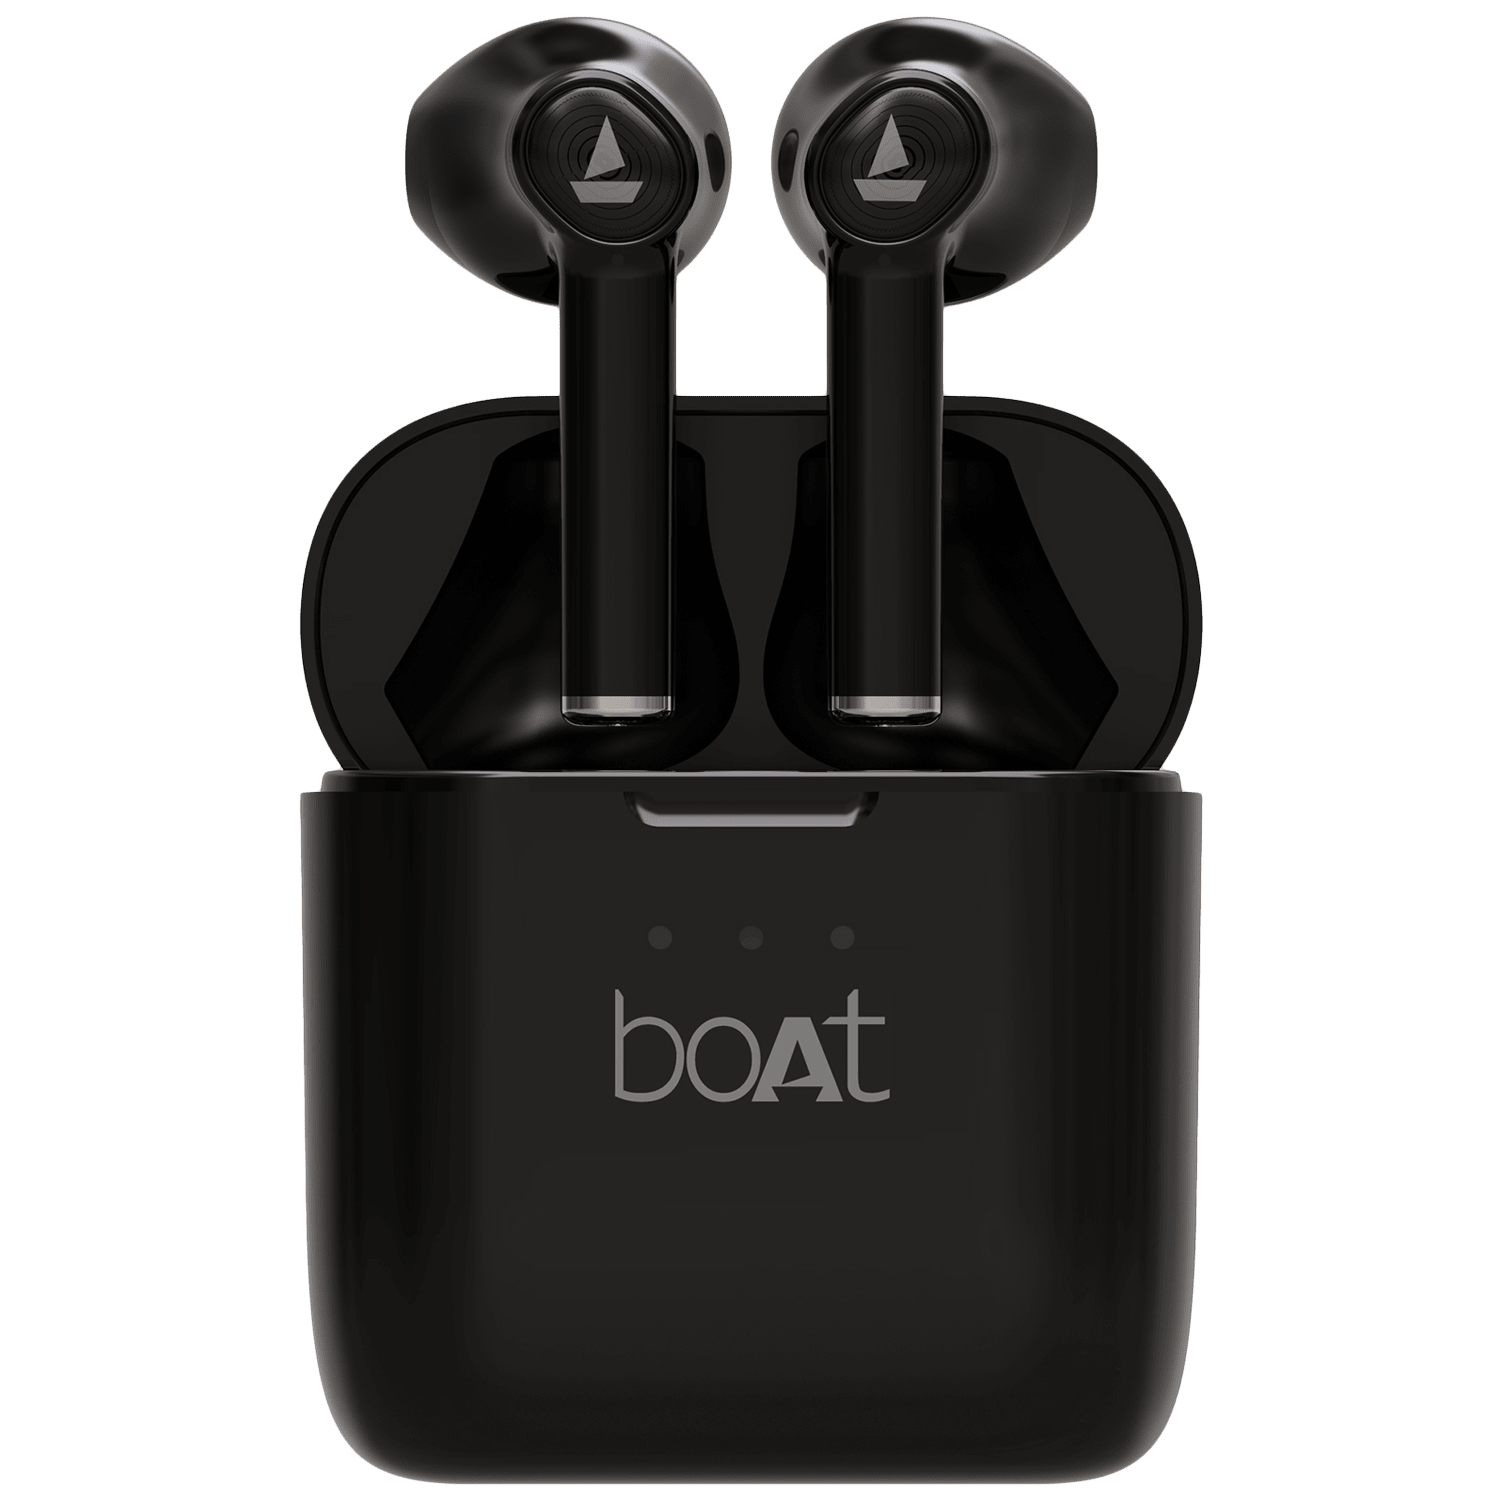 boAt Airdopes 138 In-Ear Truly Wireless Earbuds with Mic (Bluetooth 5.0, Voice Assistant Supported, Black)